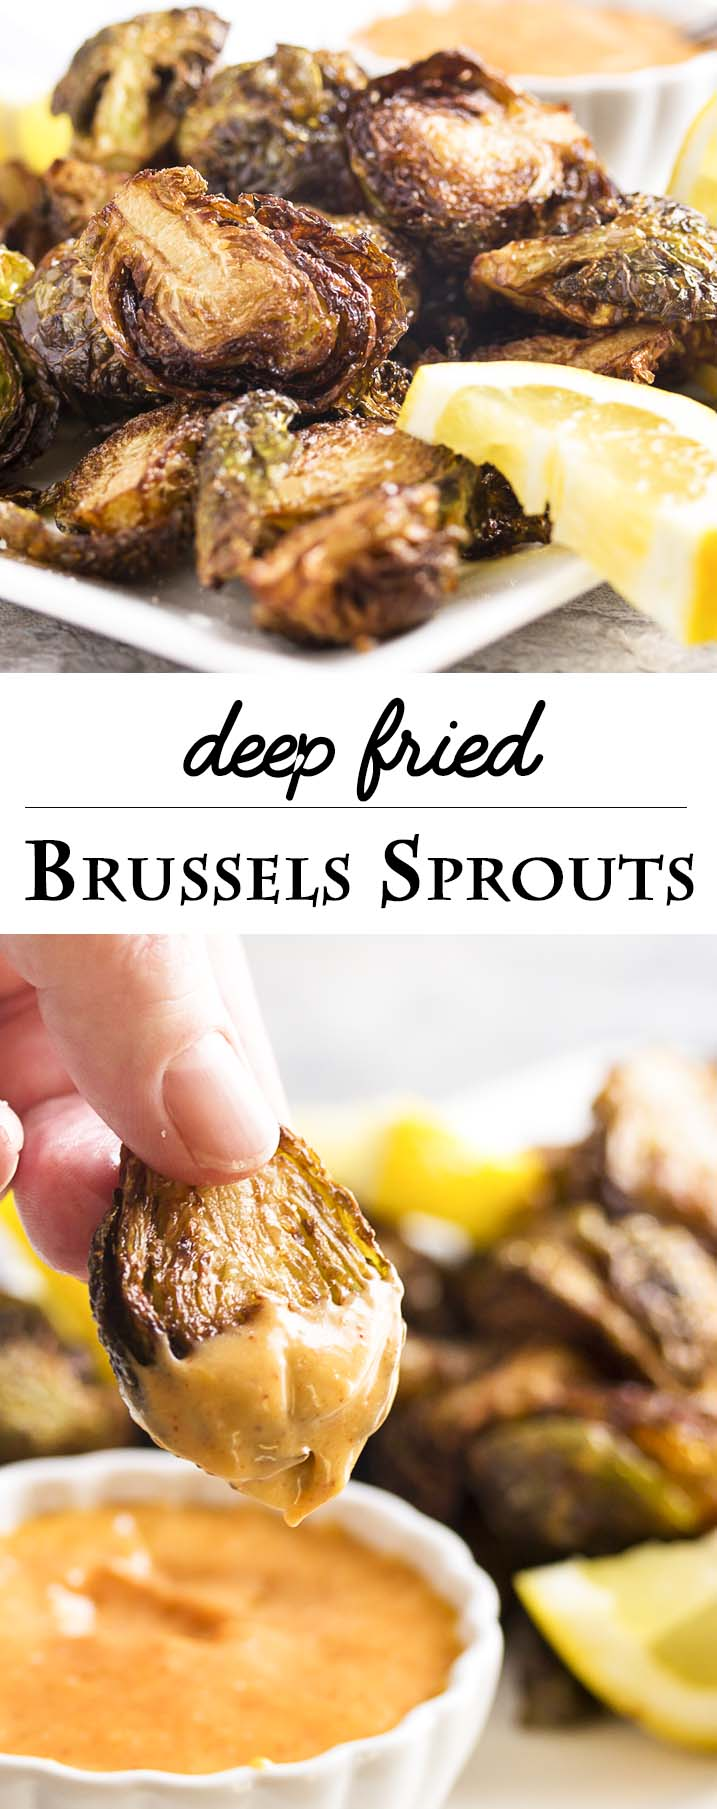 Deep fried Brussels sprouts served with a sweet and tangy sauce are a yummy snack, an addictive appetizer, and a fun Thanksgiving dish. Gluten free and simple to make! | justalittlebitofbacon.com